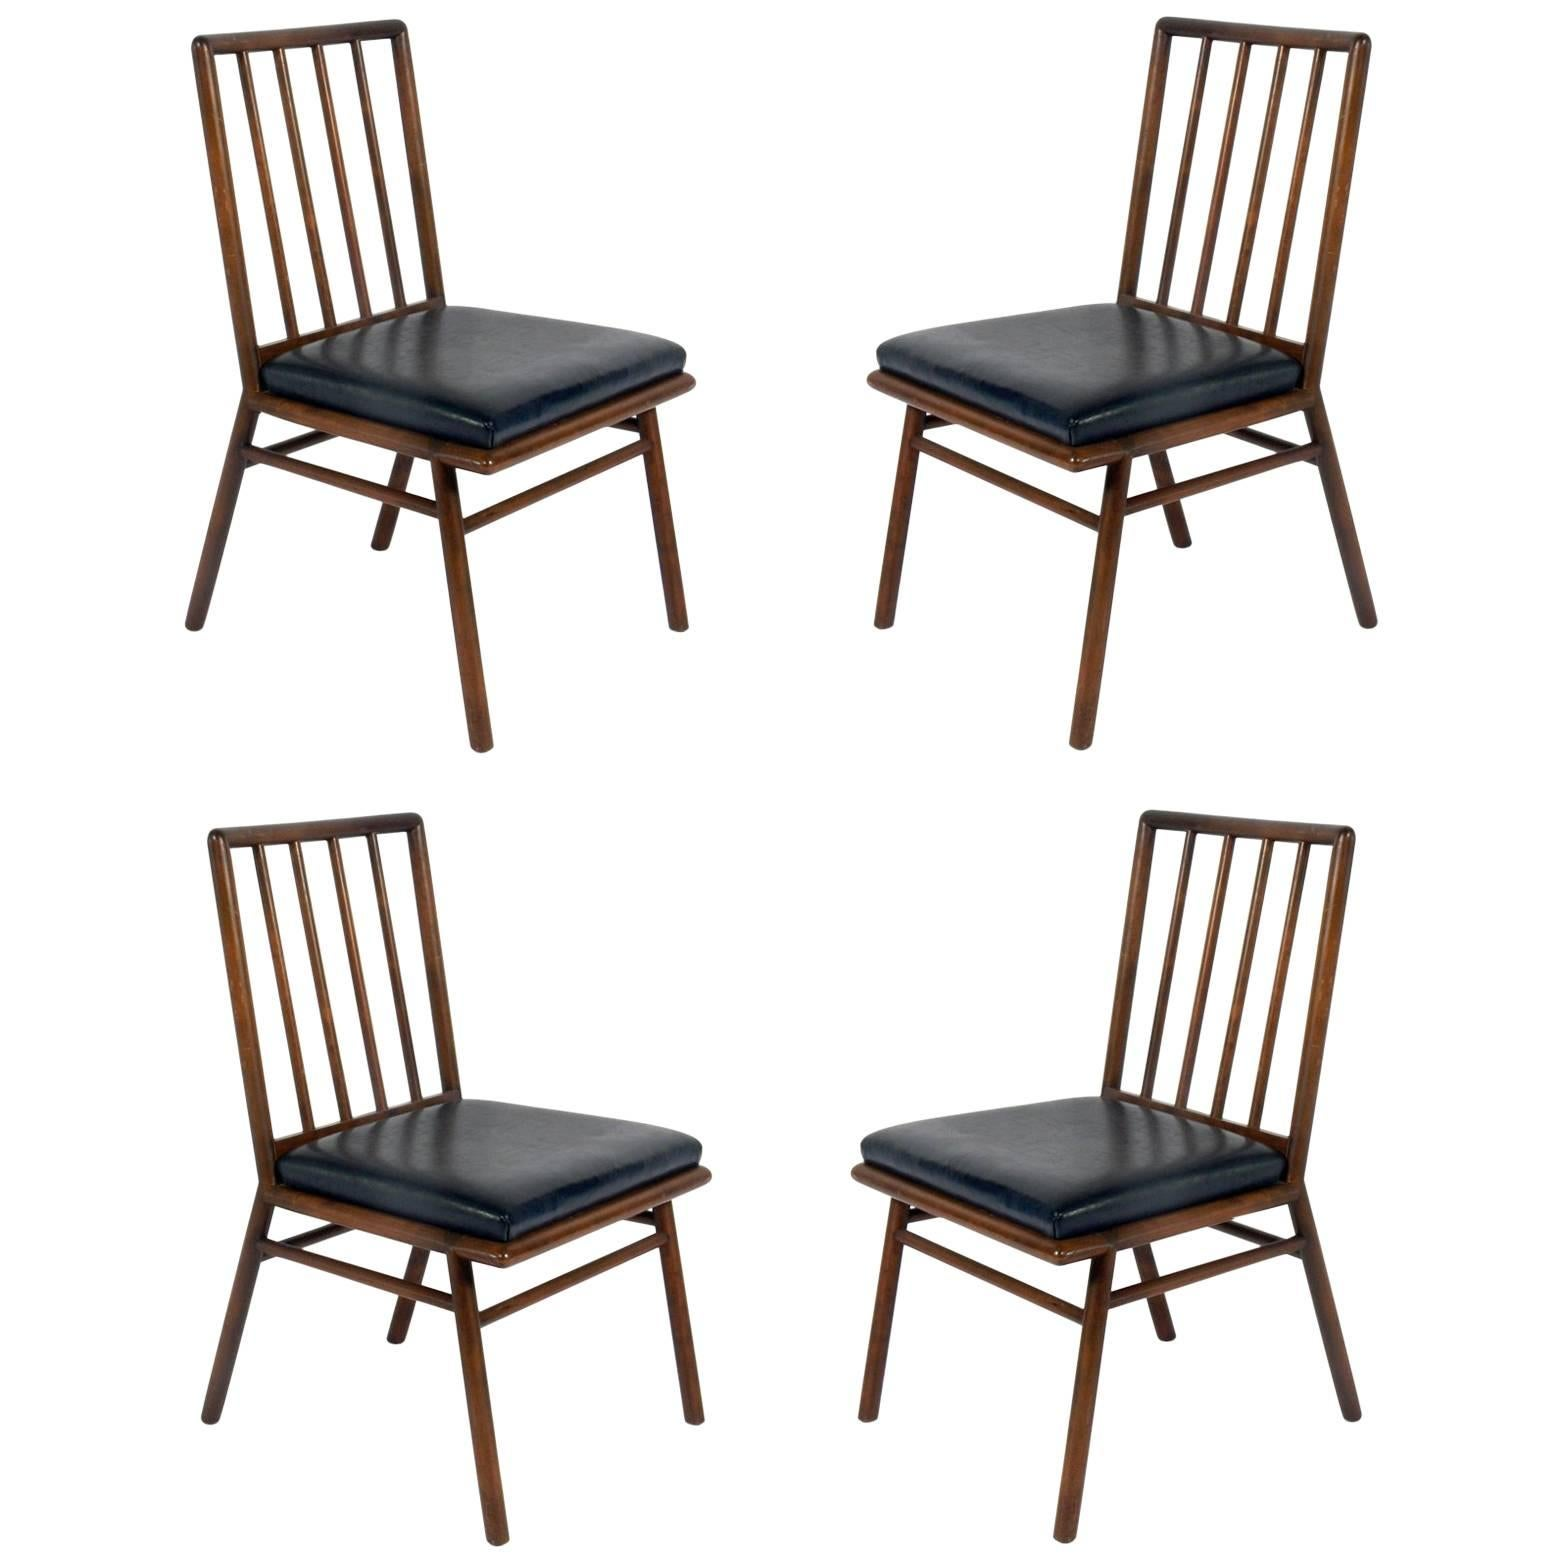 Set of Four Dining Chairs by T. H. Robsjohn-Gibbings